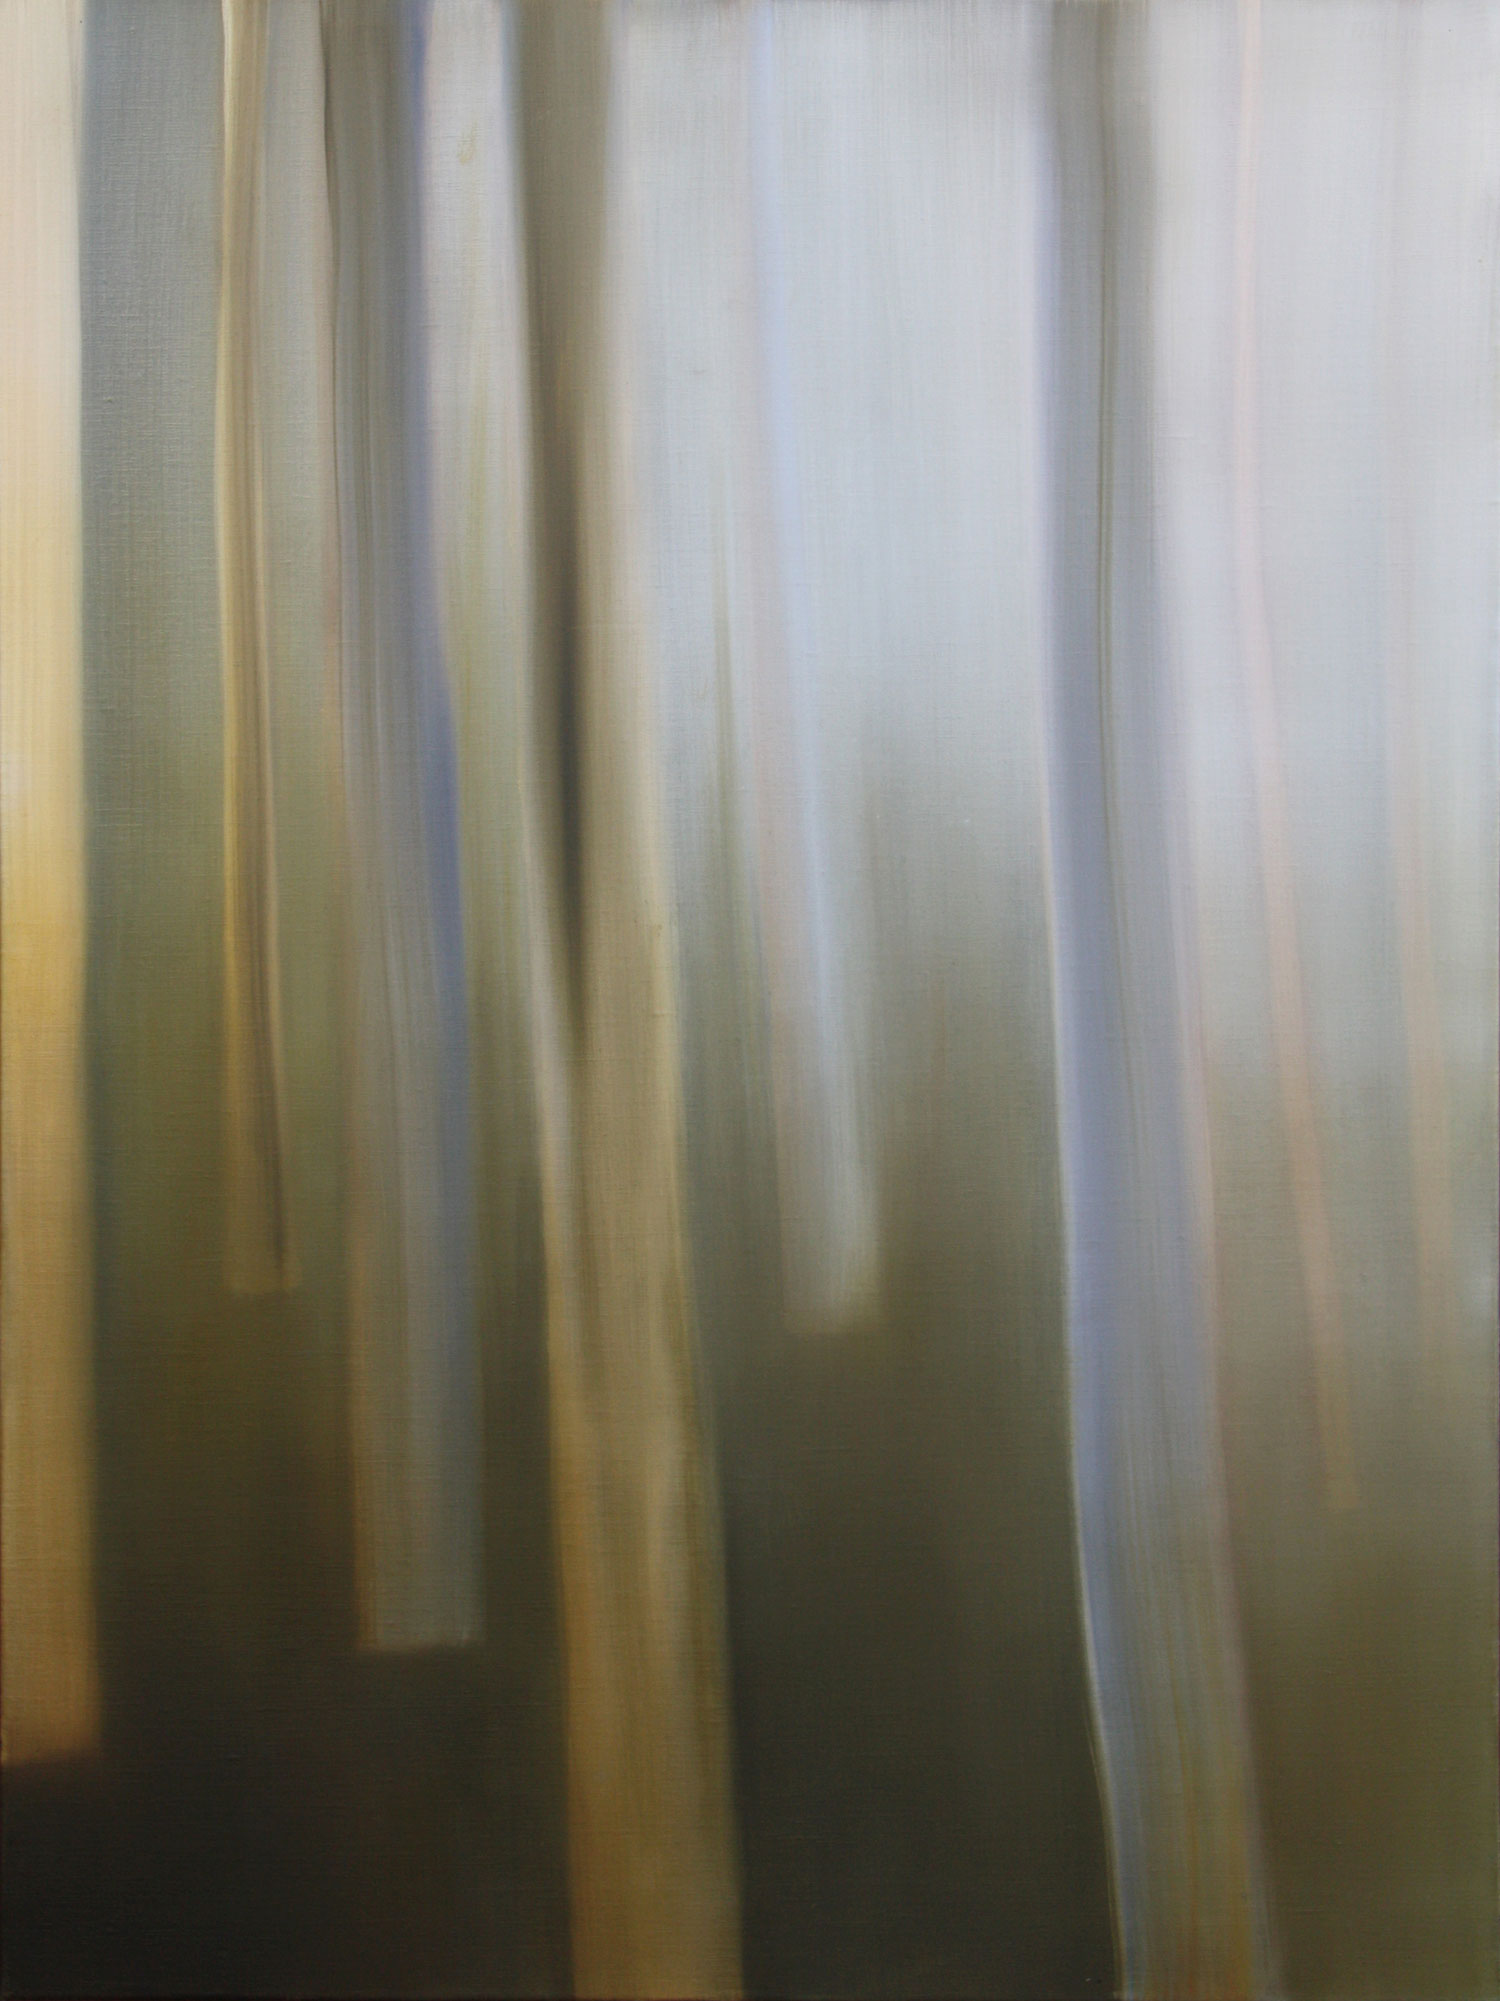 """Title:   """"Wasps take detours through the house. I'm amazed at their sense of direction and skillful maneuvering through the small bathroom window.""""    Medium:  Oil on linen.   Size:  122 x 91 cm"""